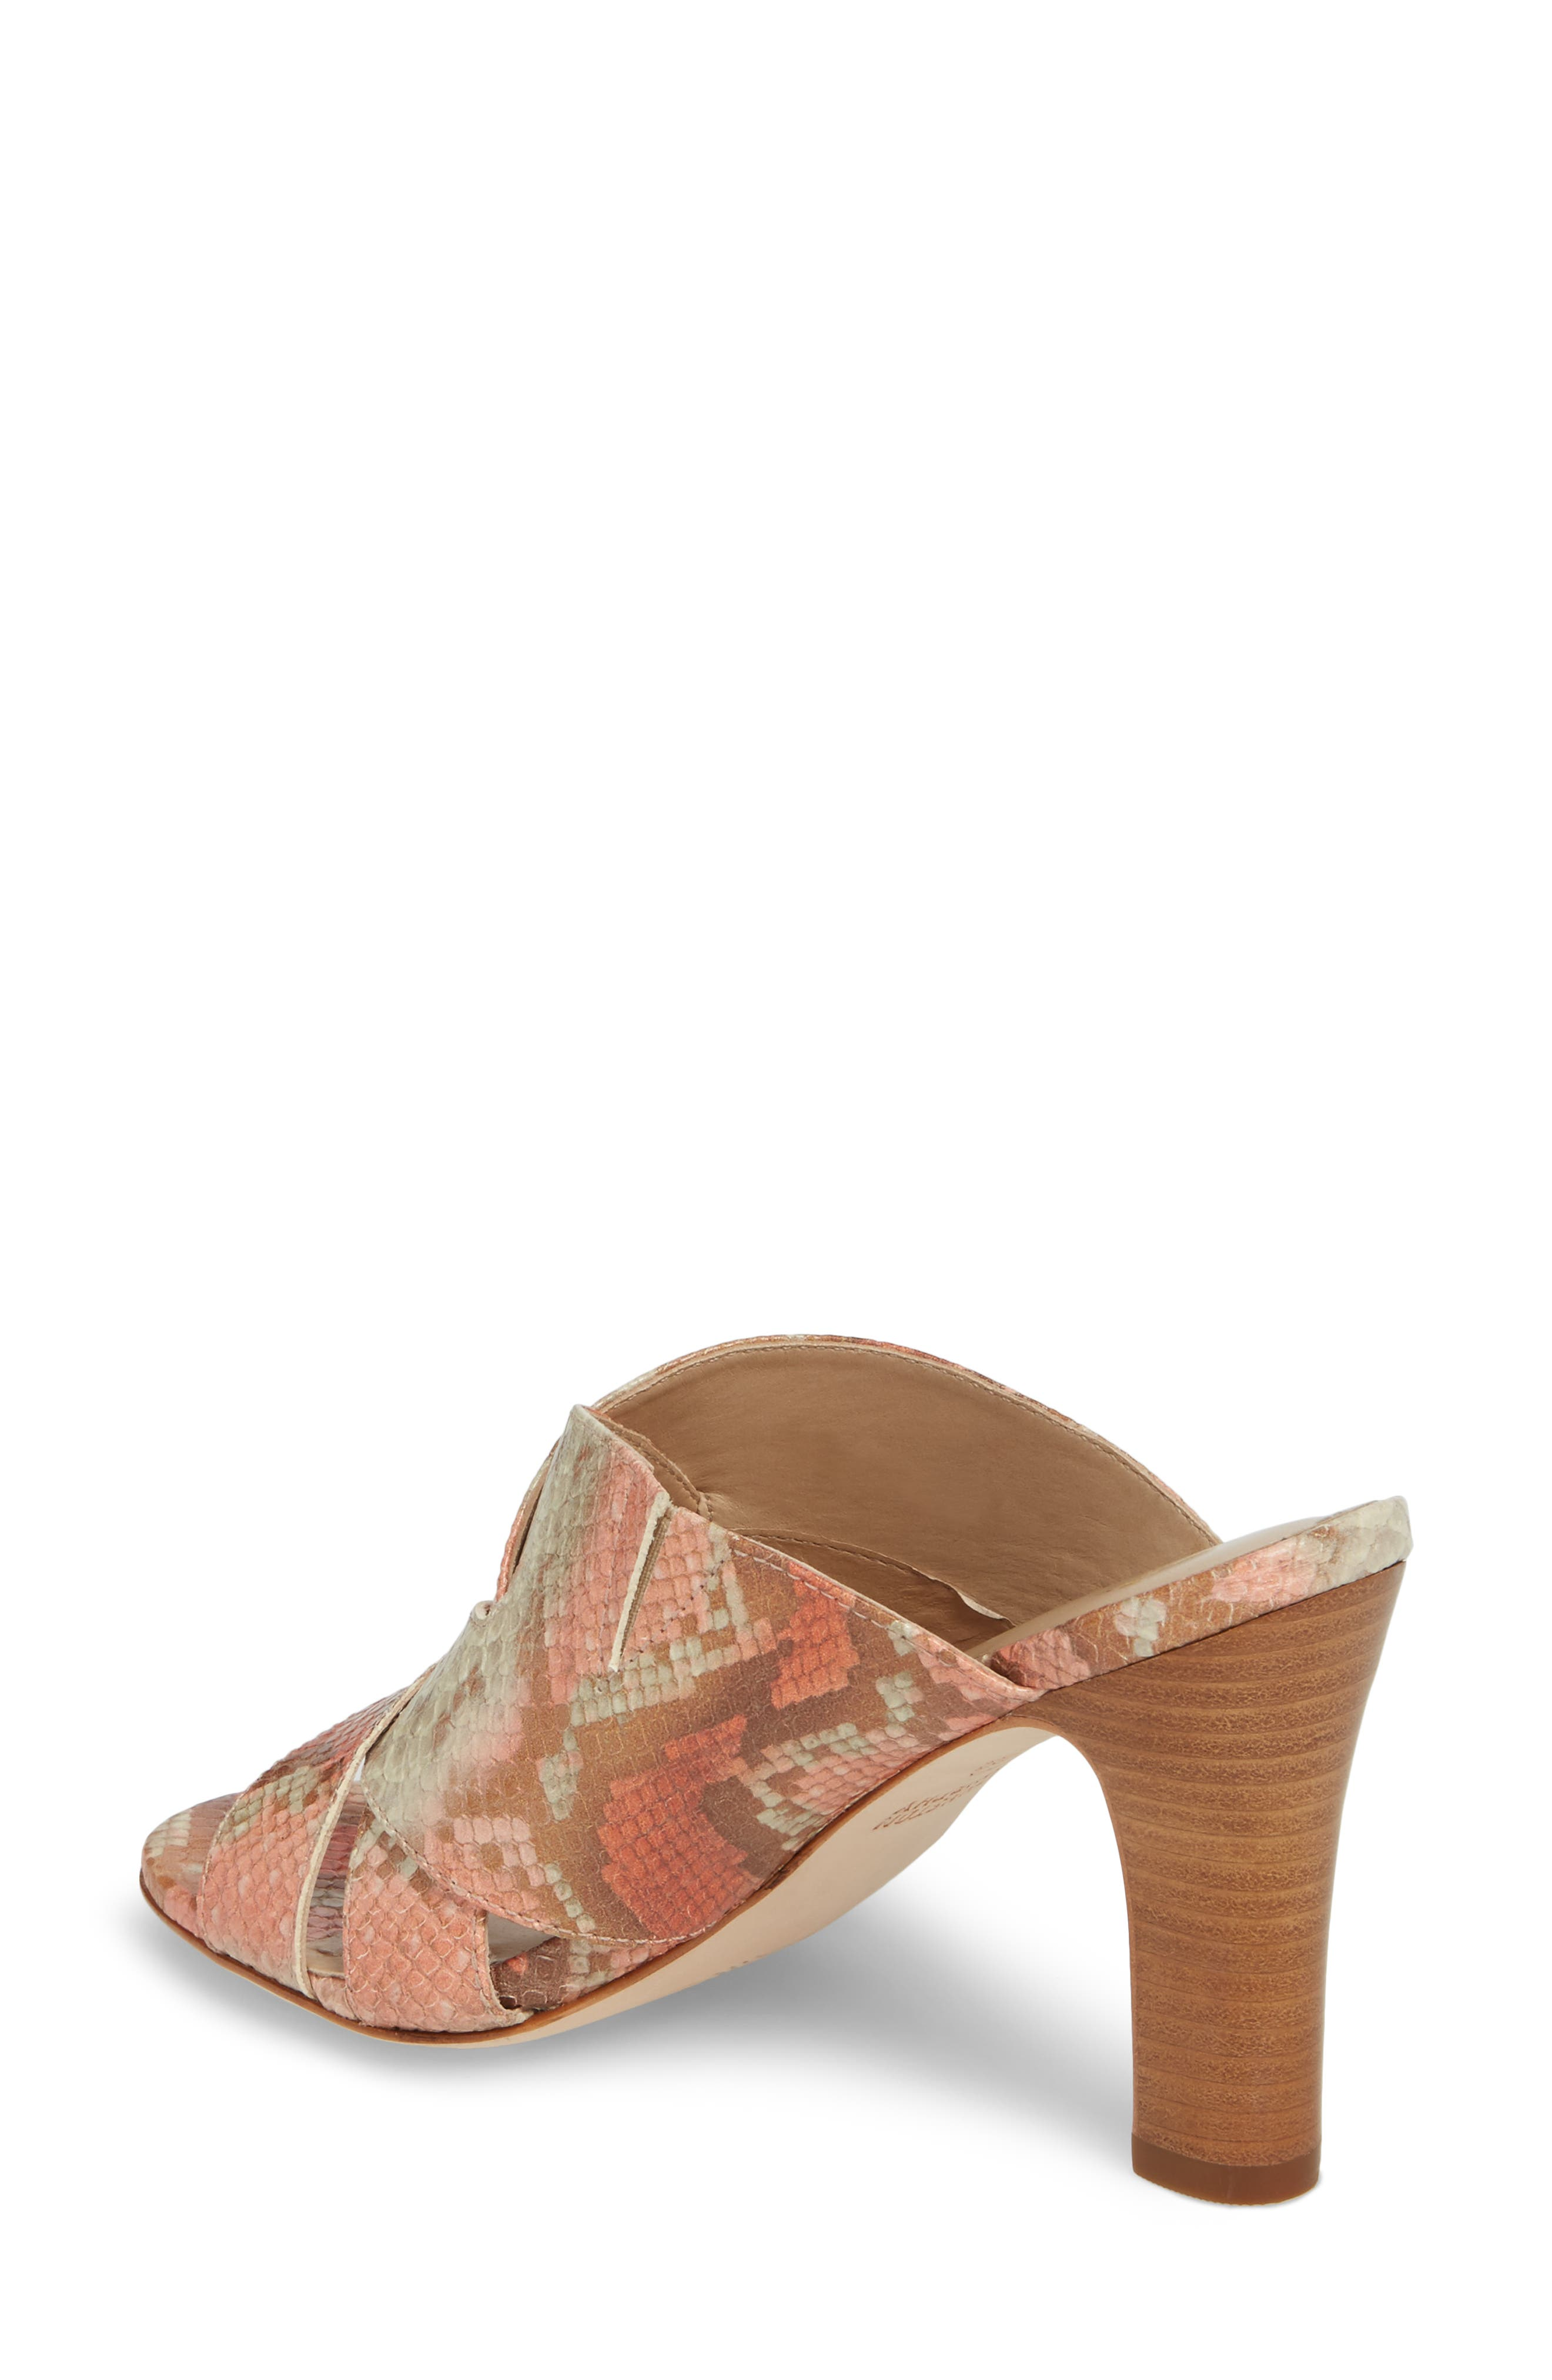 Carrie Mule Sandal,                             Alternate thumbnail 2, color,                             Coral Leather